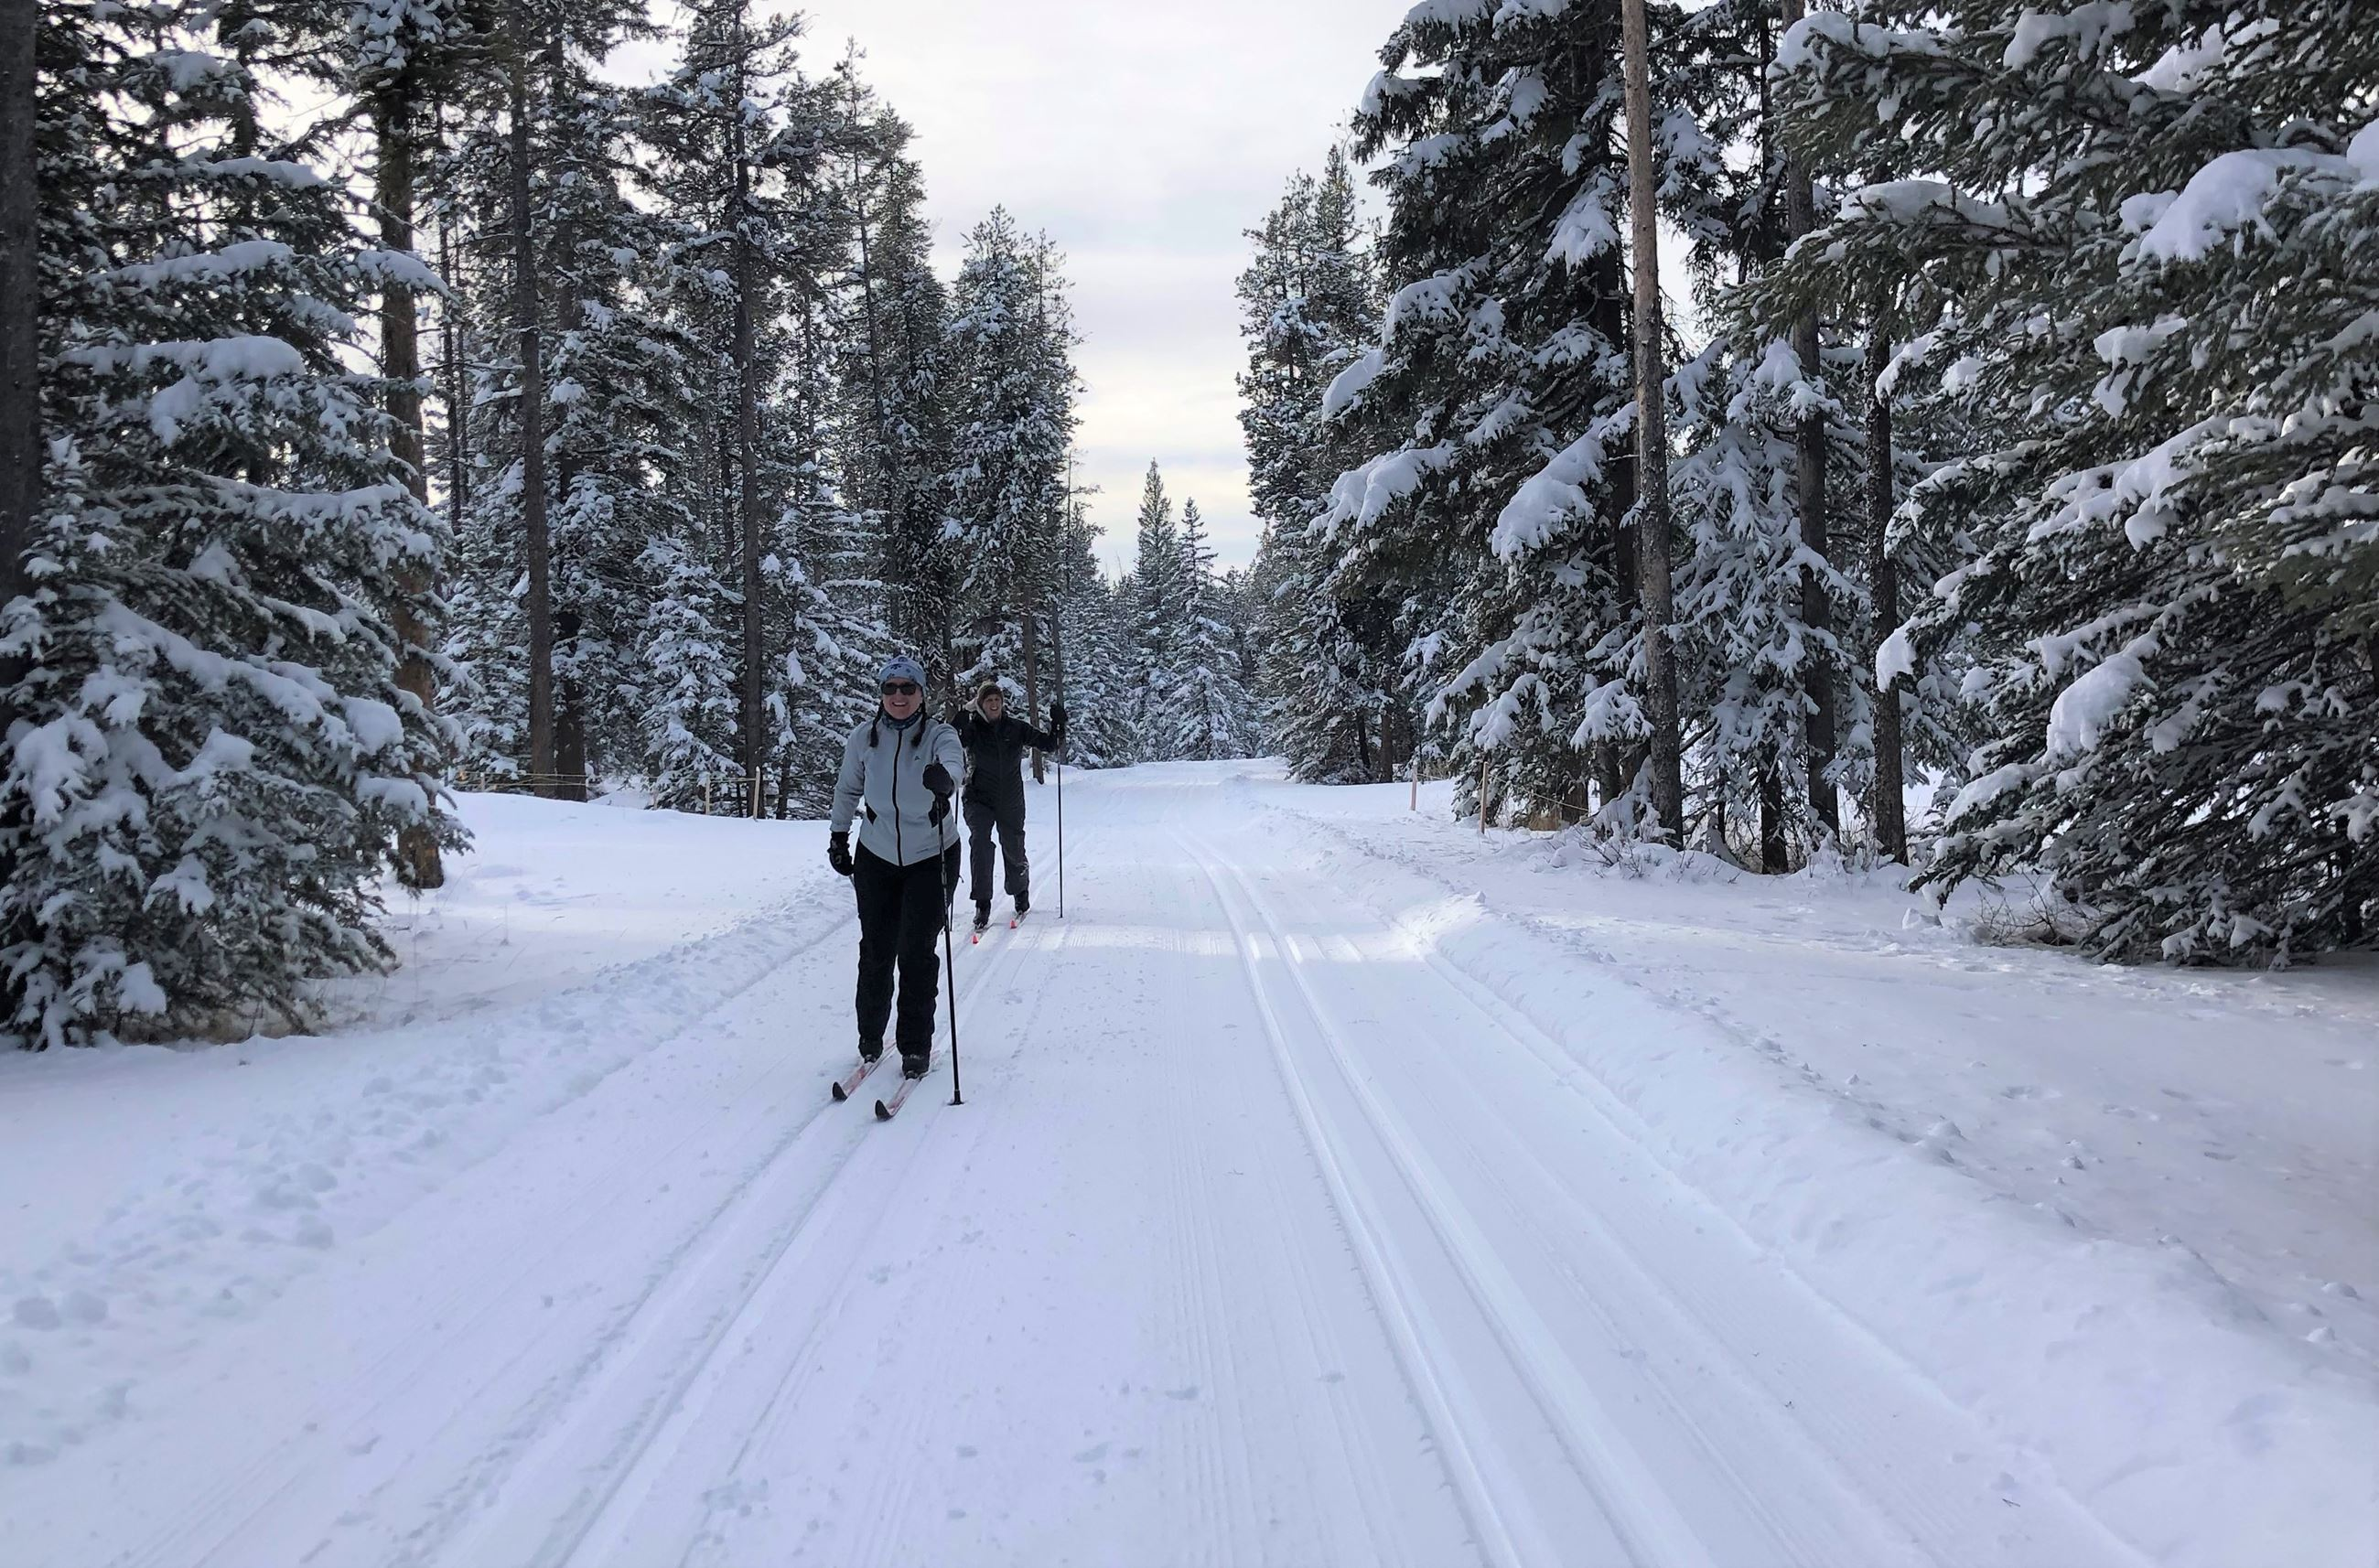 Tunnel Mountain Campground Skiers - Dec 23 - 2020